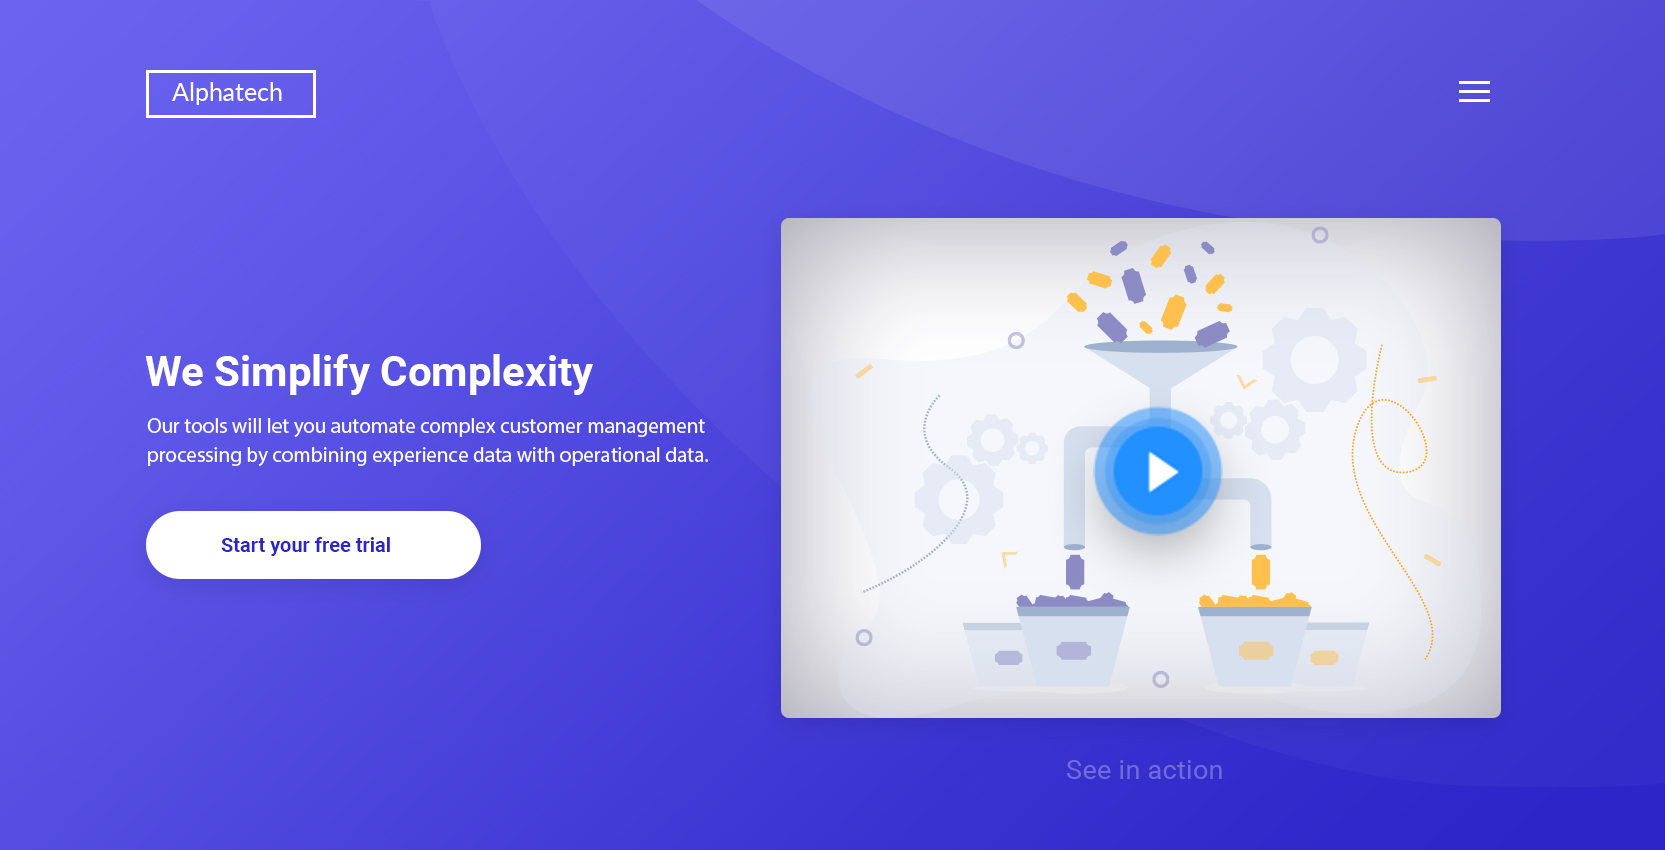 explainer video benefits banner image